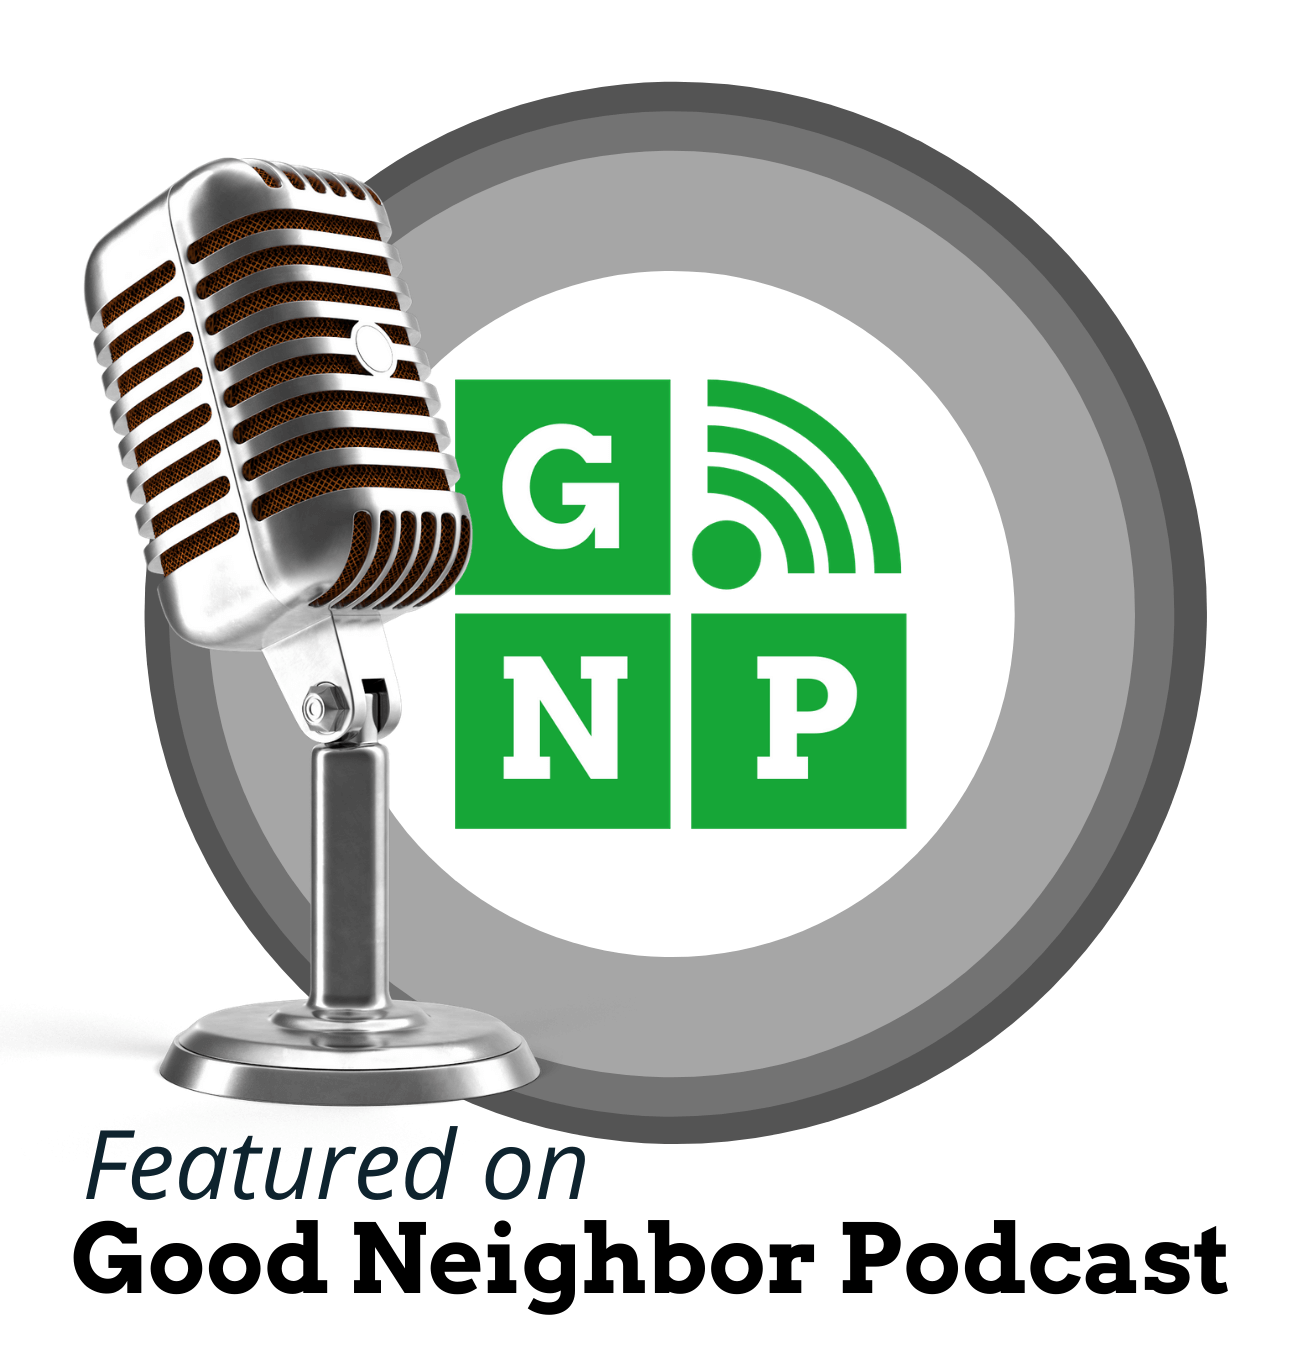 Image of microphone and Good Neighbor Podcast logo for recent talk about jewelry design with Mark Loren